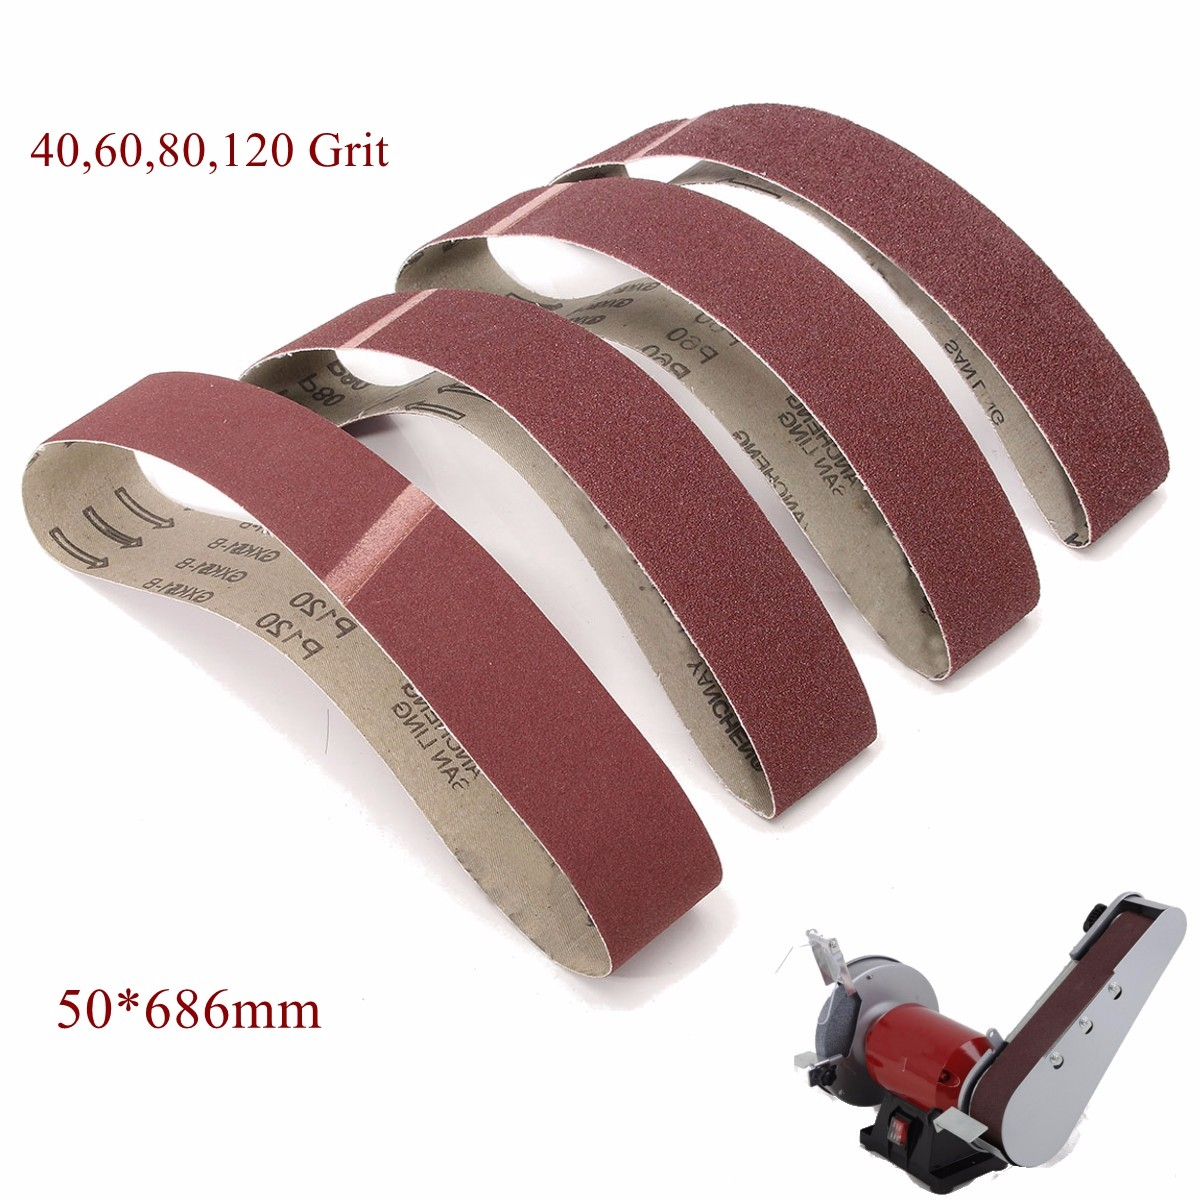 50x686mm Sanding Belts 40 60 80 120 Grit Belt Sander Power Tools For Polishing And Cleaning